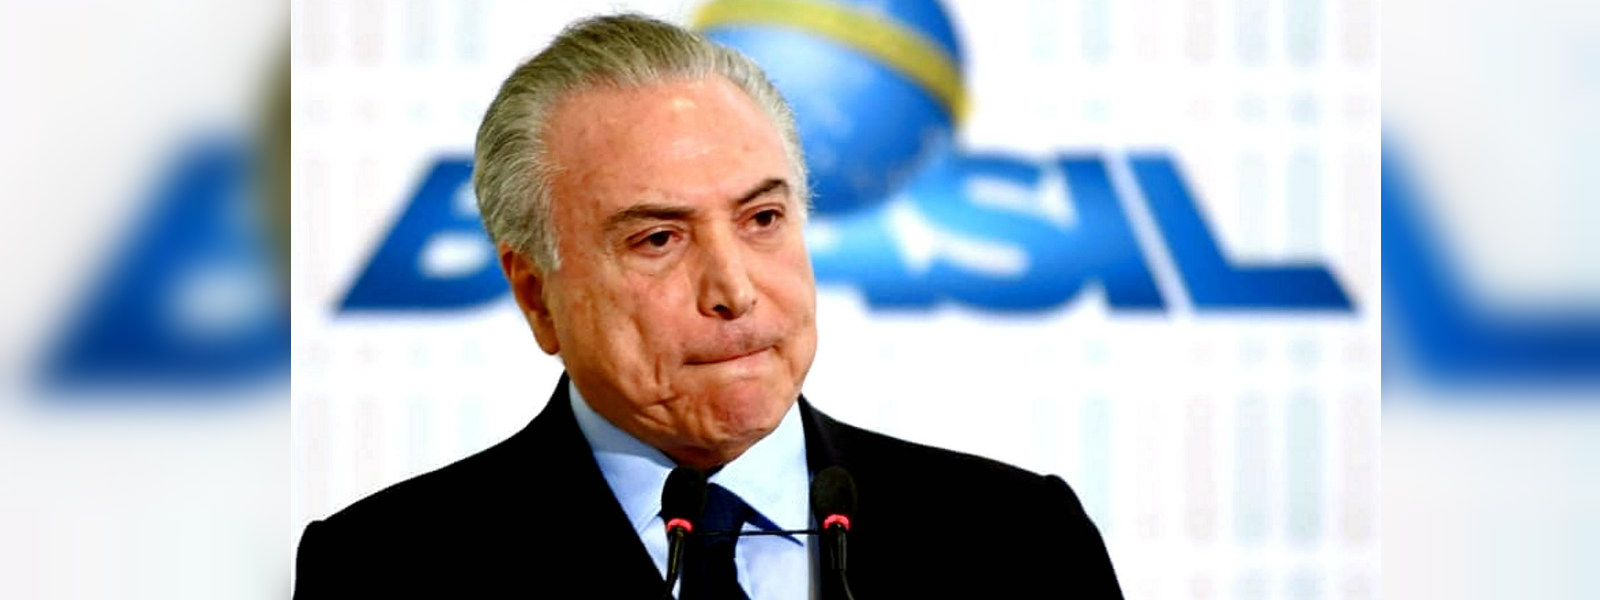 Brazil ex – president Temer turns himself in following corruption allegations